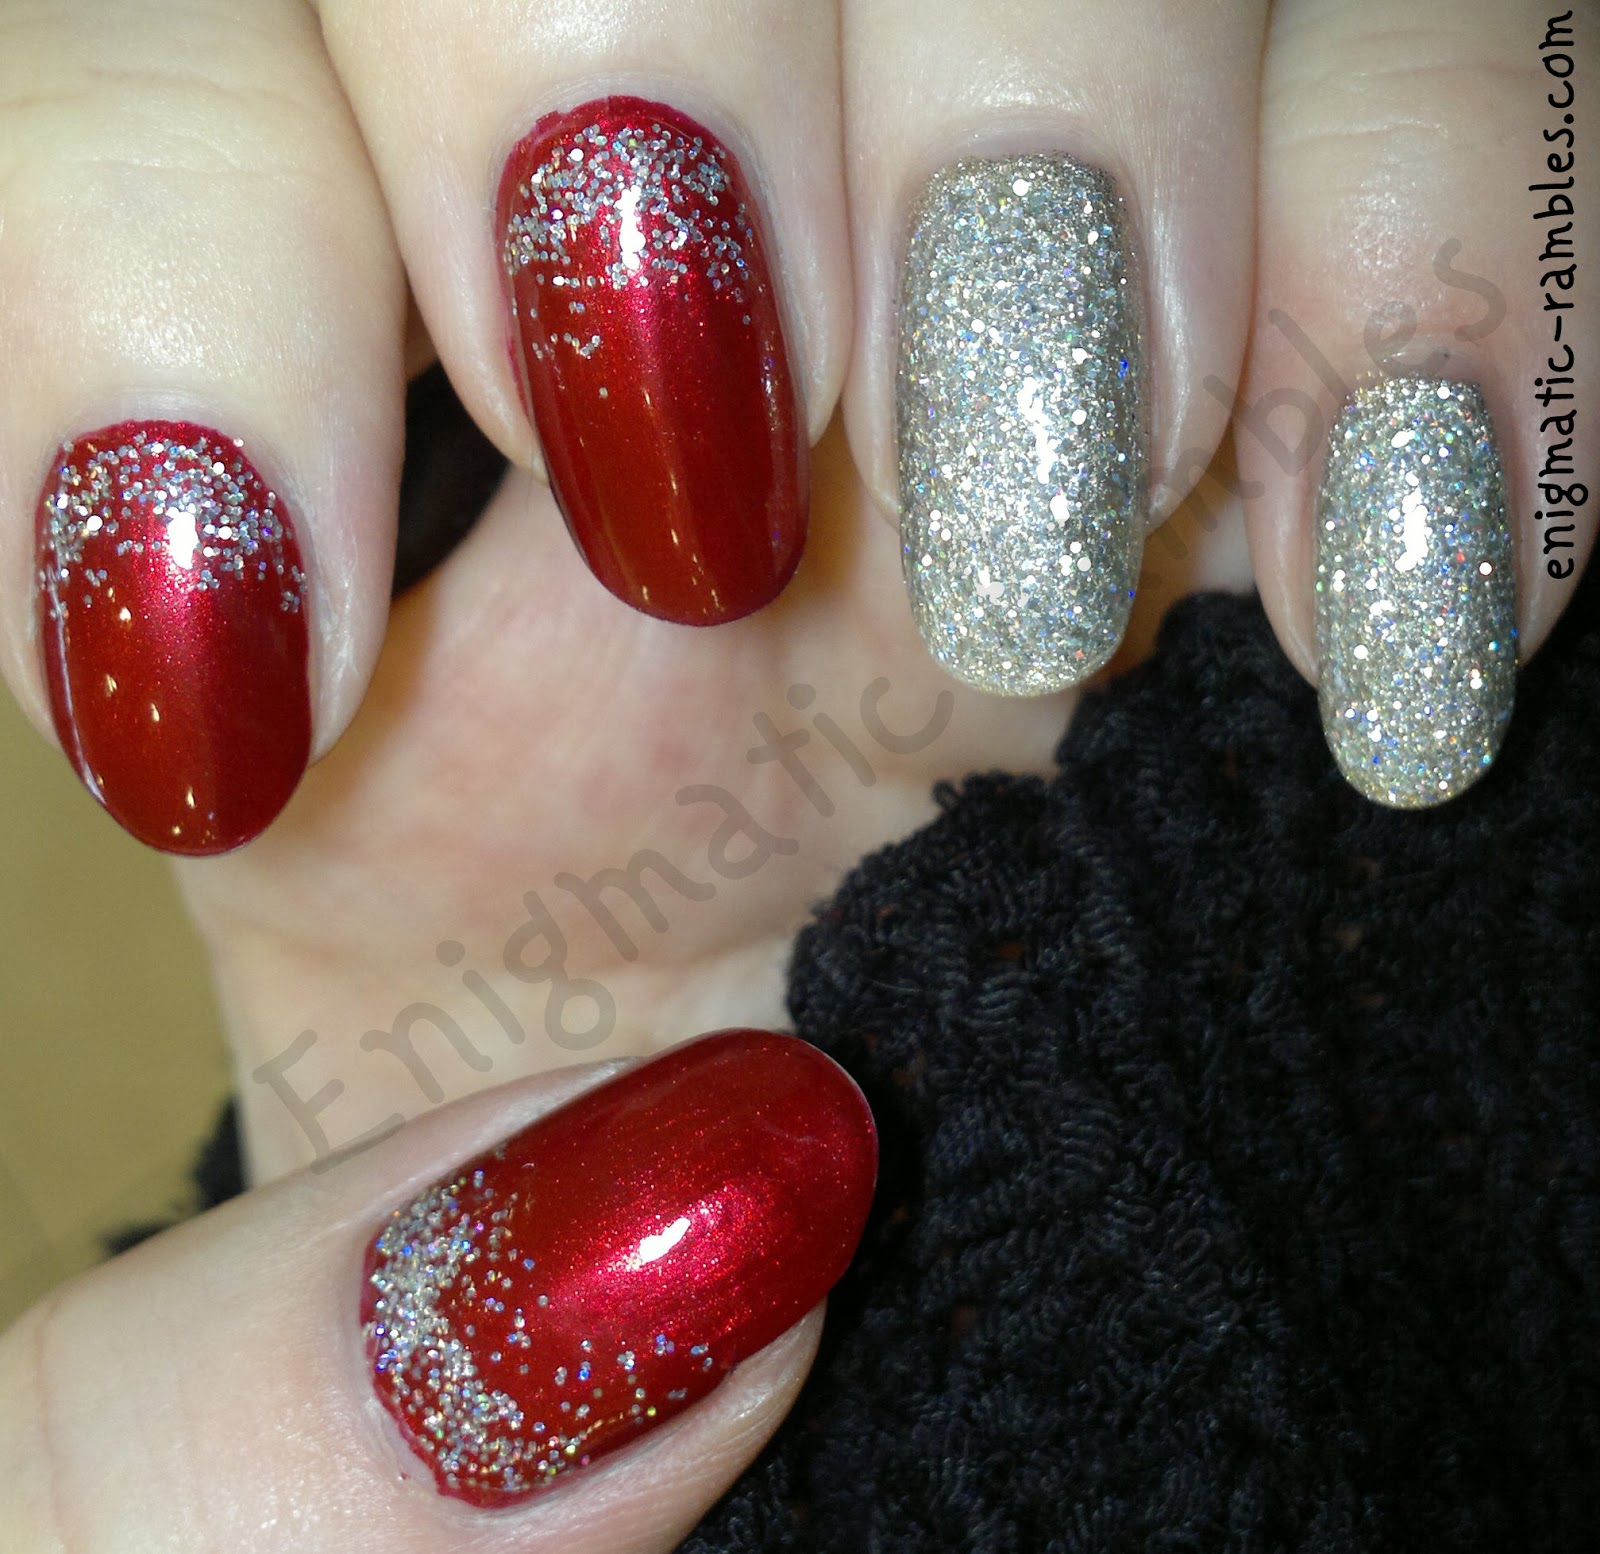 festive-glitter-gradient-nails-leighton-denny-be-my-berry-models-own-juicy-jules-essie-beyond-cozy